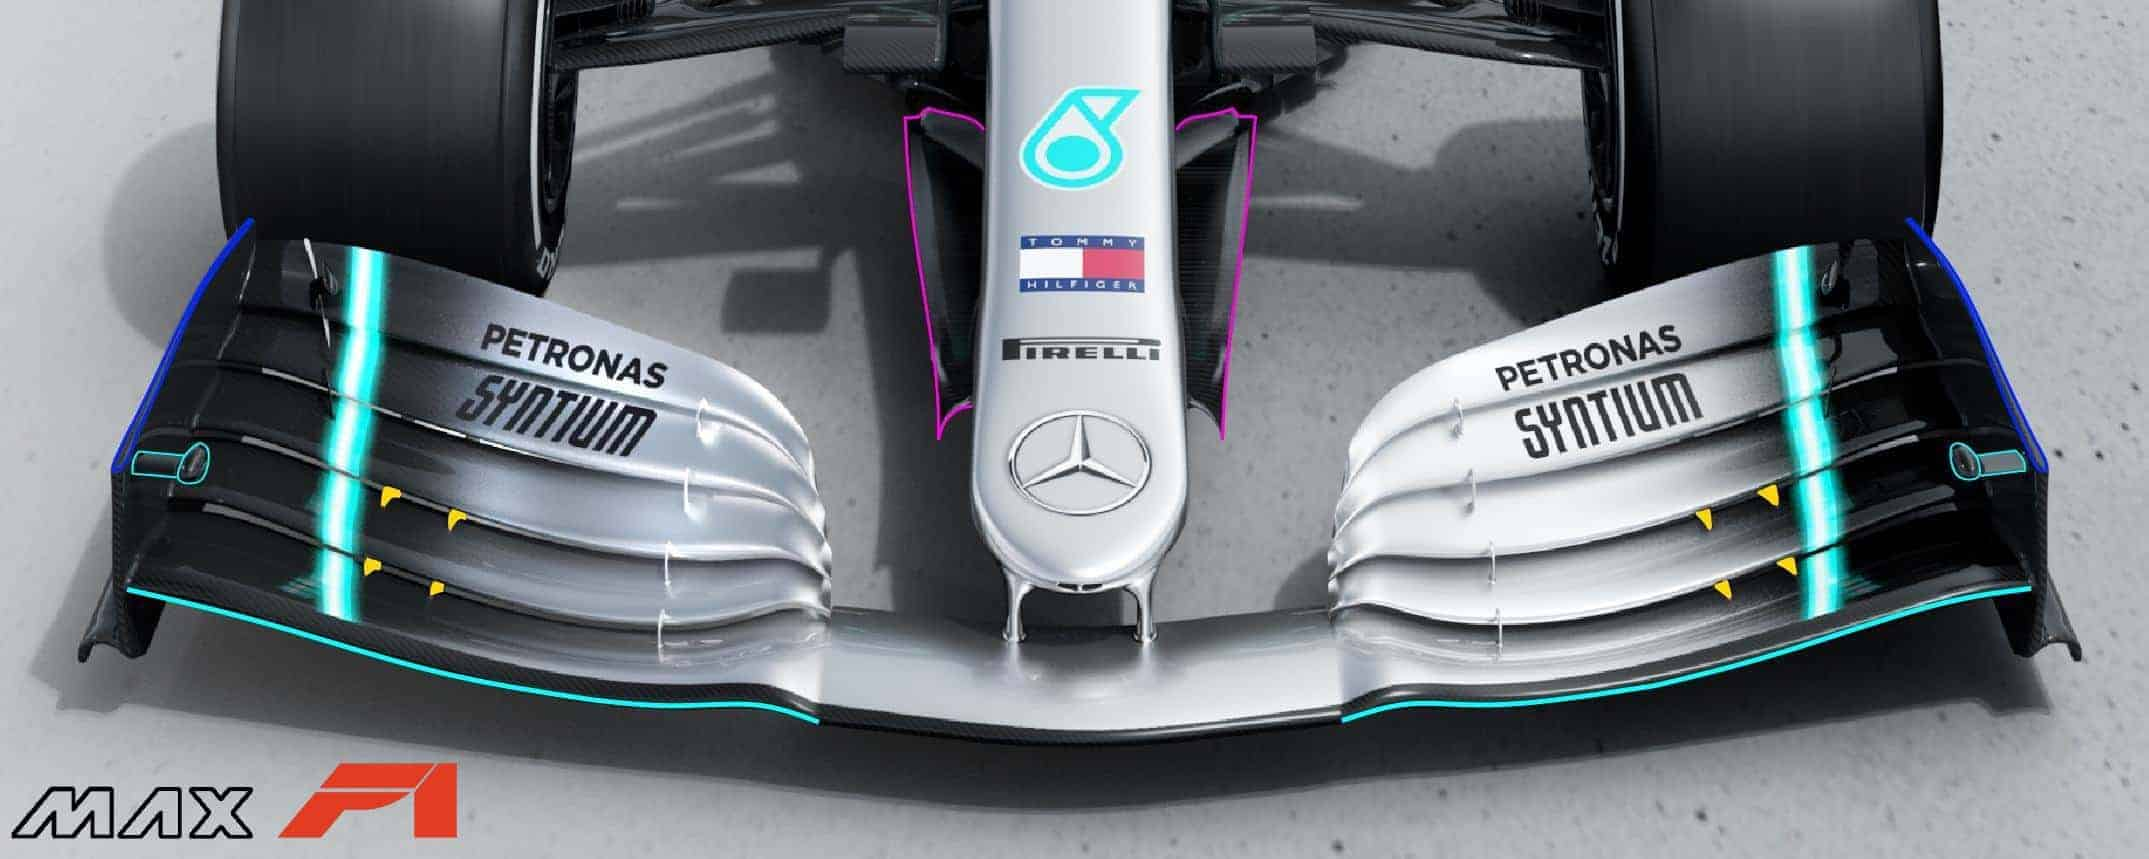 2019 F1 tech Mercedes F1 W10 EQ Power + front wing and nose aero Photo Daimler Edited by MAXF1net -